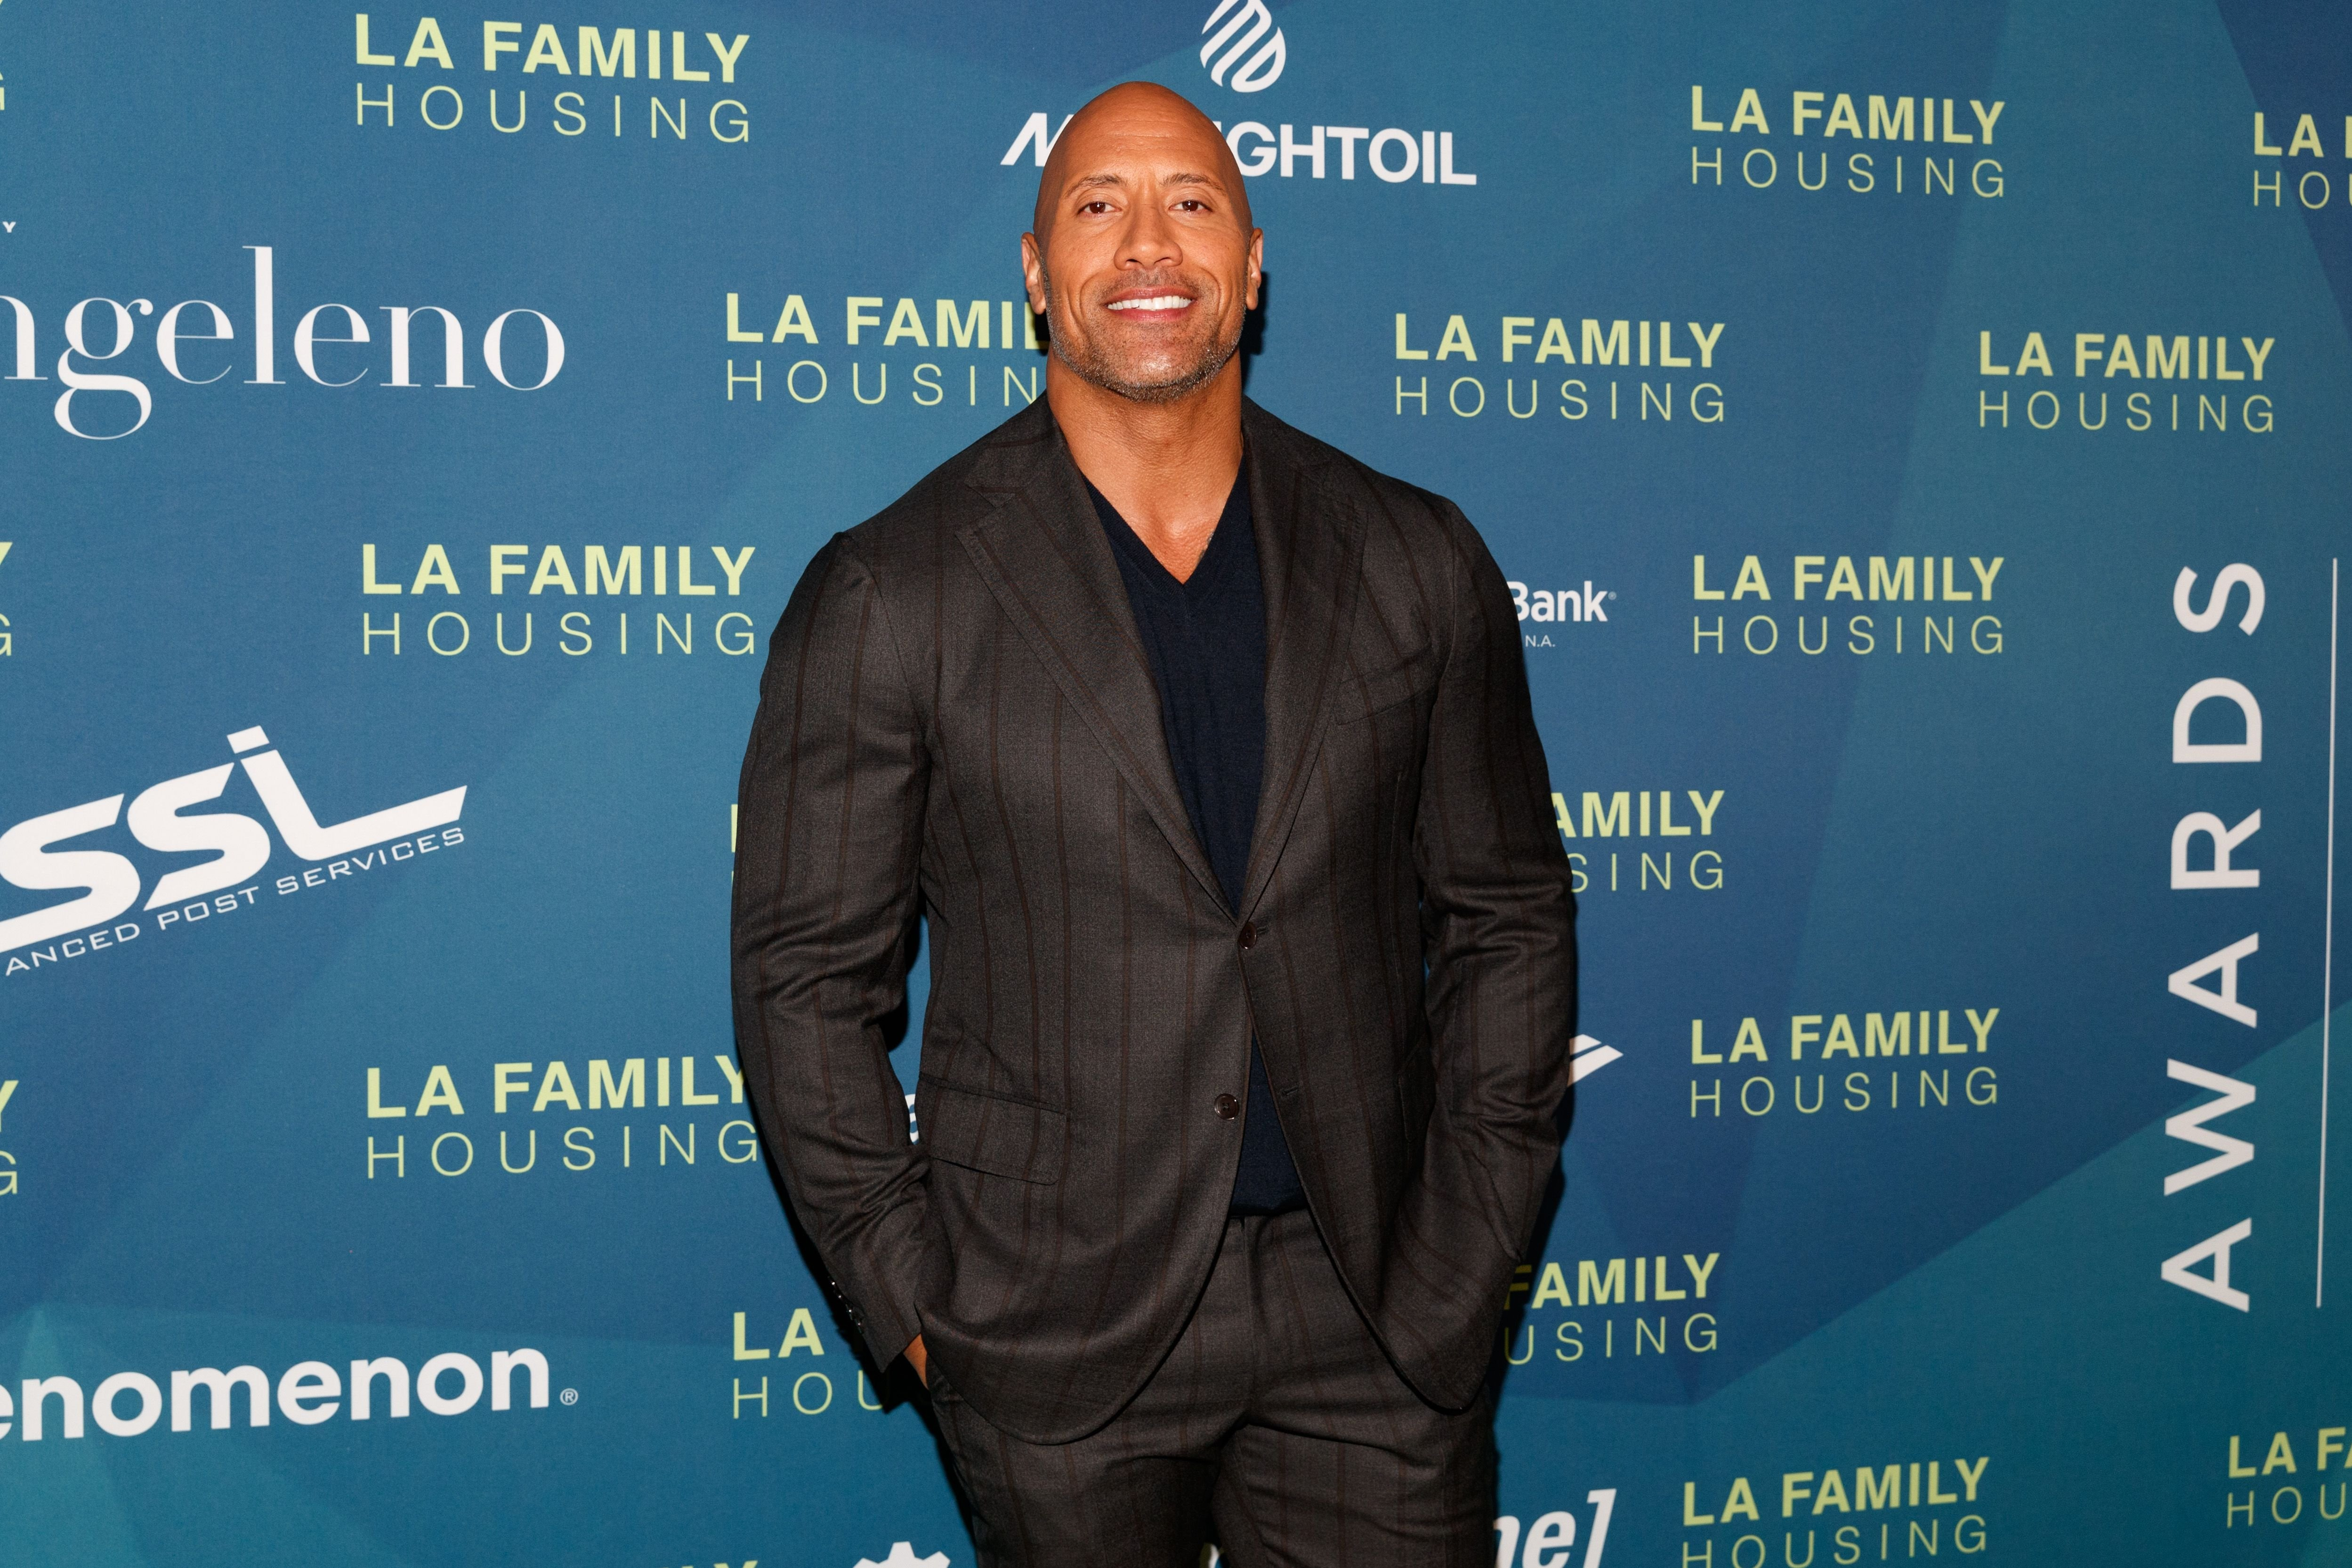 Dwayne Johnson at the LAFH Awards at The Lot in West Hollywood on April 5, 2018   Photo: Getty Images